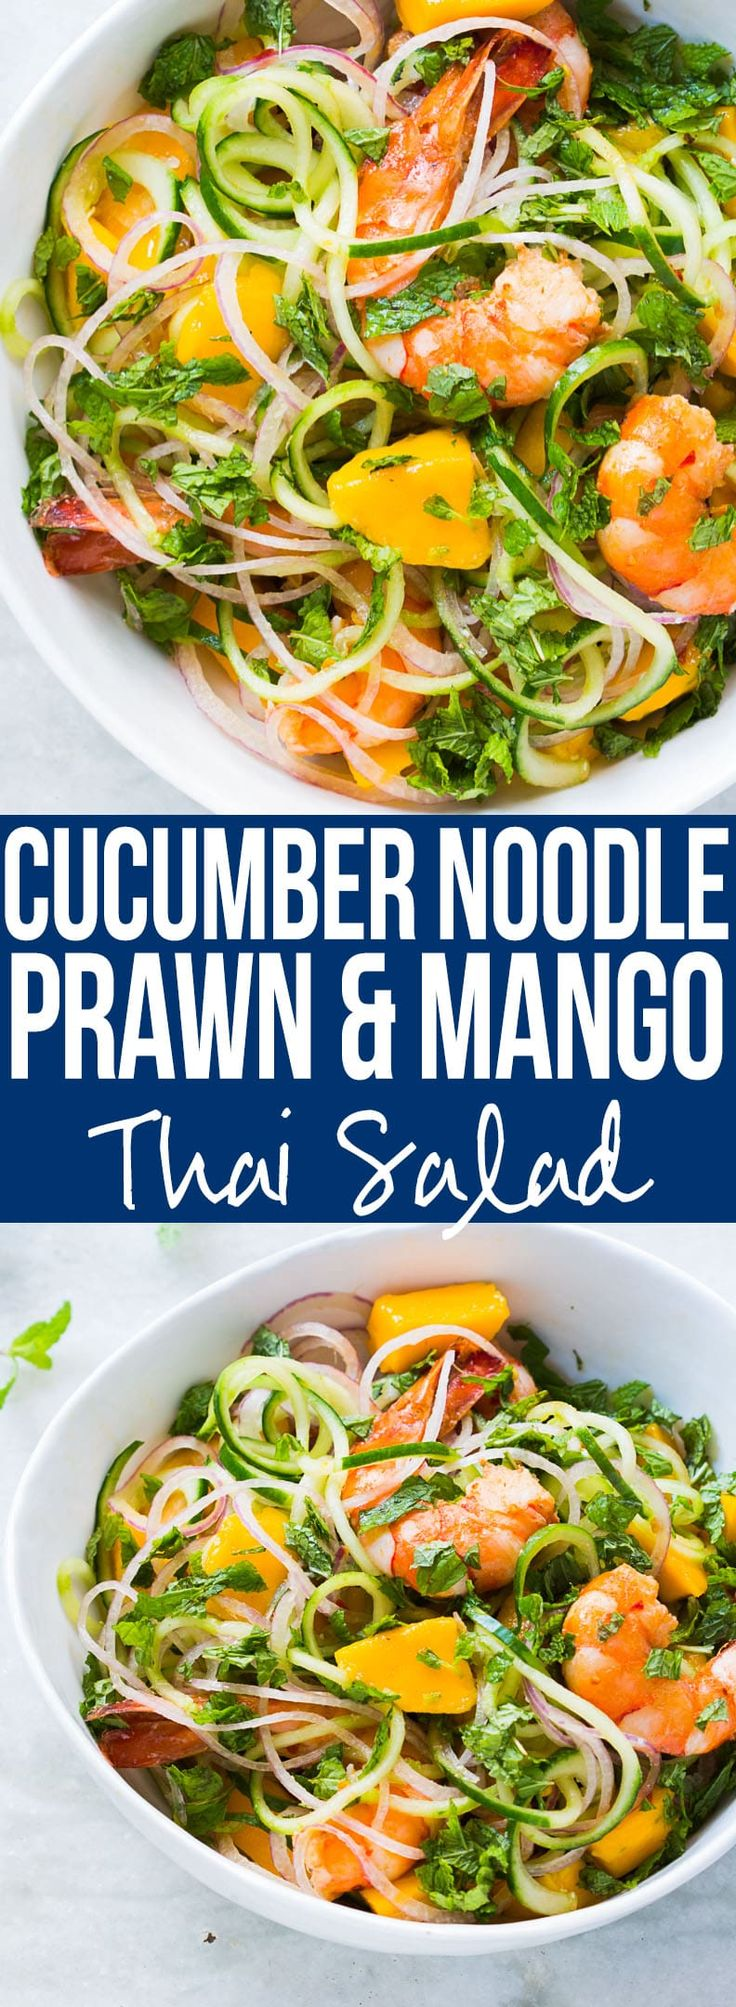 CUCUMBER NOODLE PRAWN AND MANGO SALAD (GLUTEN FREE) - Recipe for a fresh cucumber noodle prawn and mango salad which is also gluten free. All the thai flavours of Bangkok in this hearty spiralizer salad recipe.